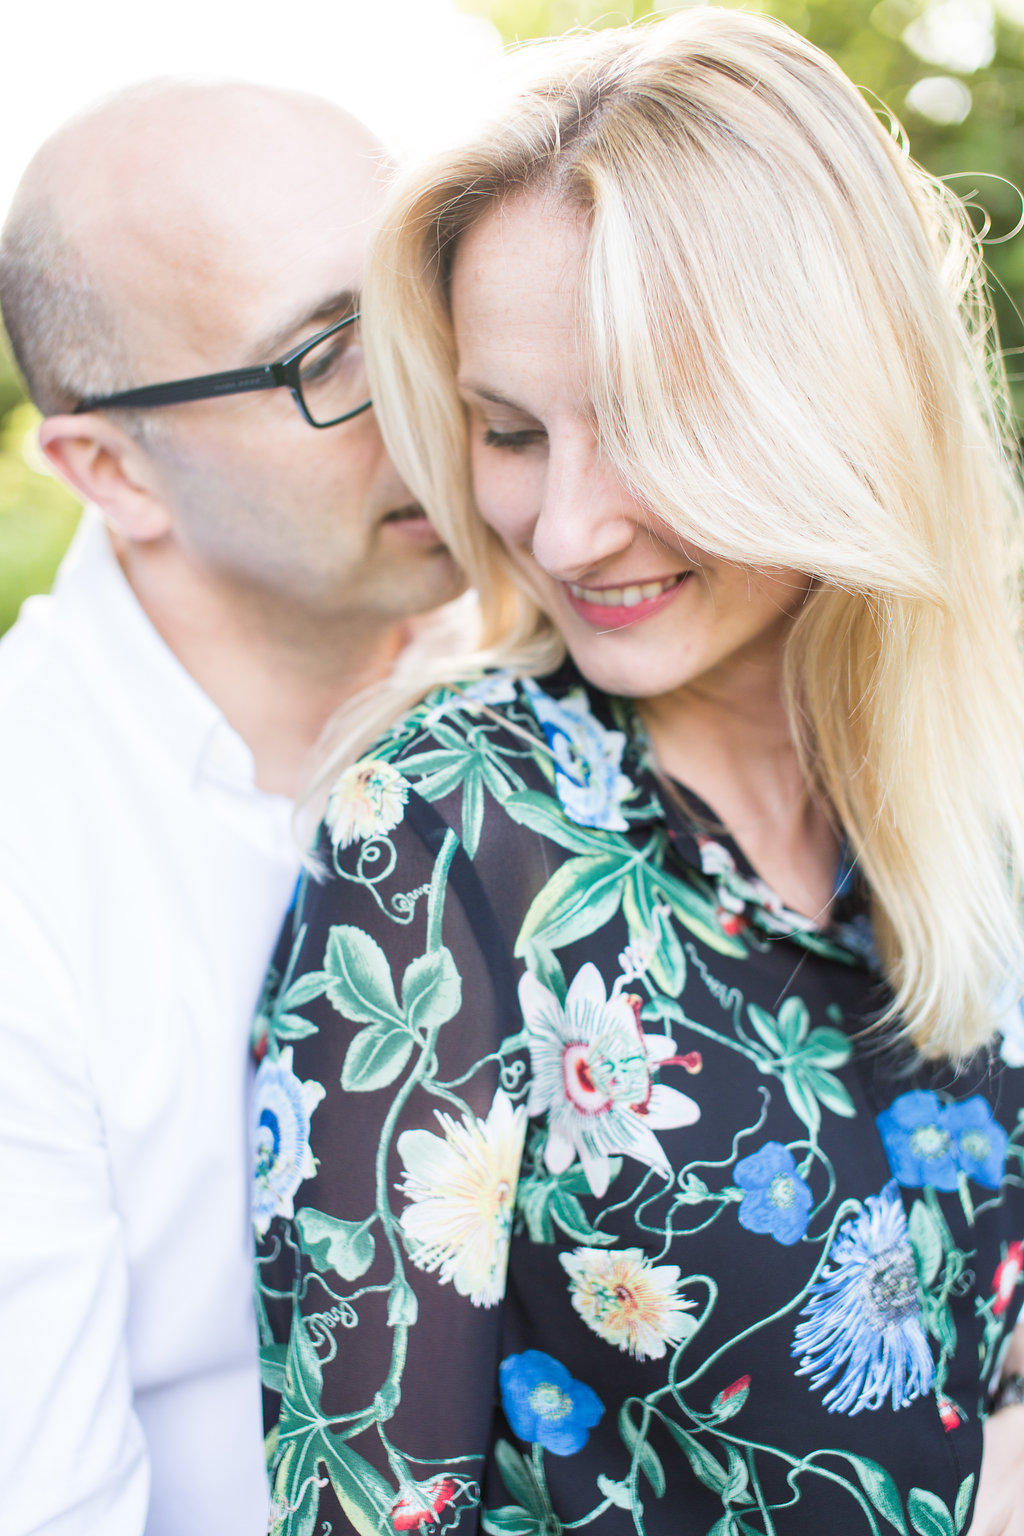 Valley Gardens Engagement Session: Kev & Abbe